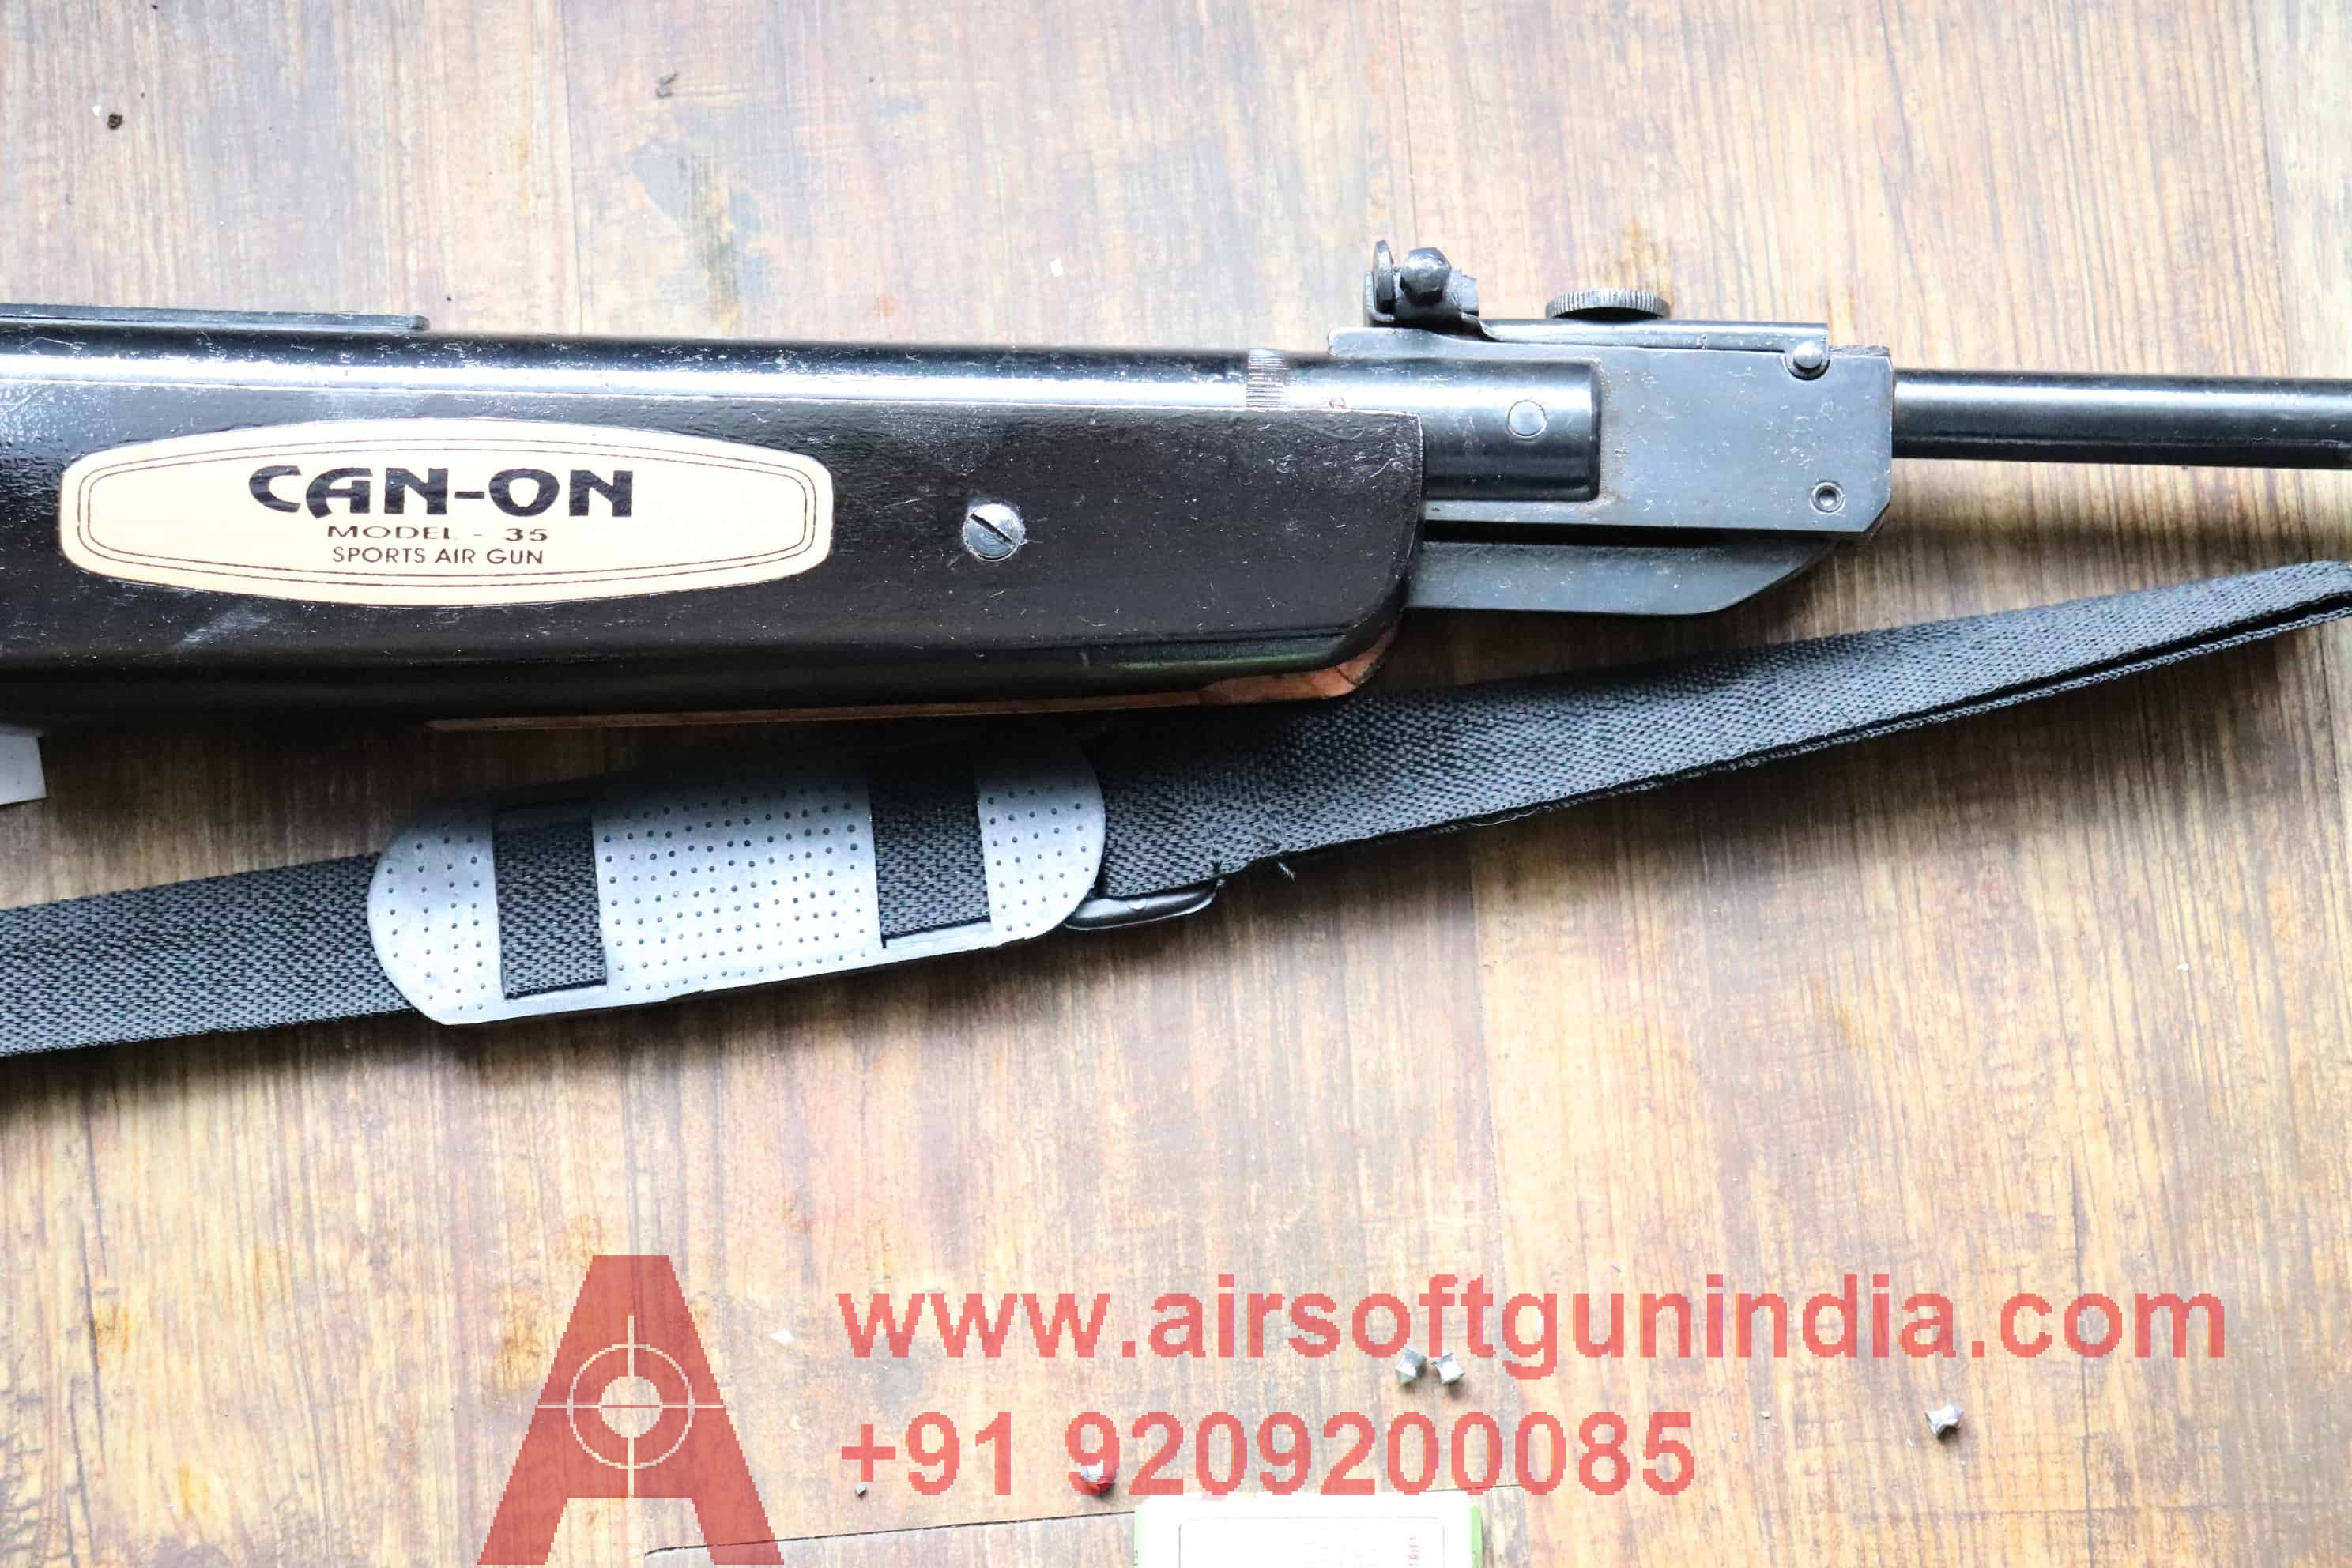 35 SPORTS AIR RIFLE BY AIRSOFT GUN INDIA